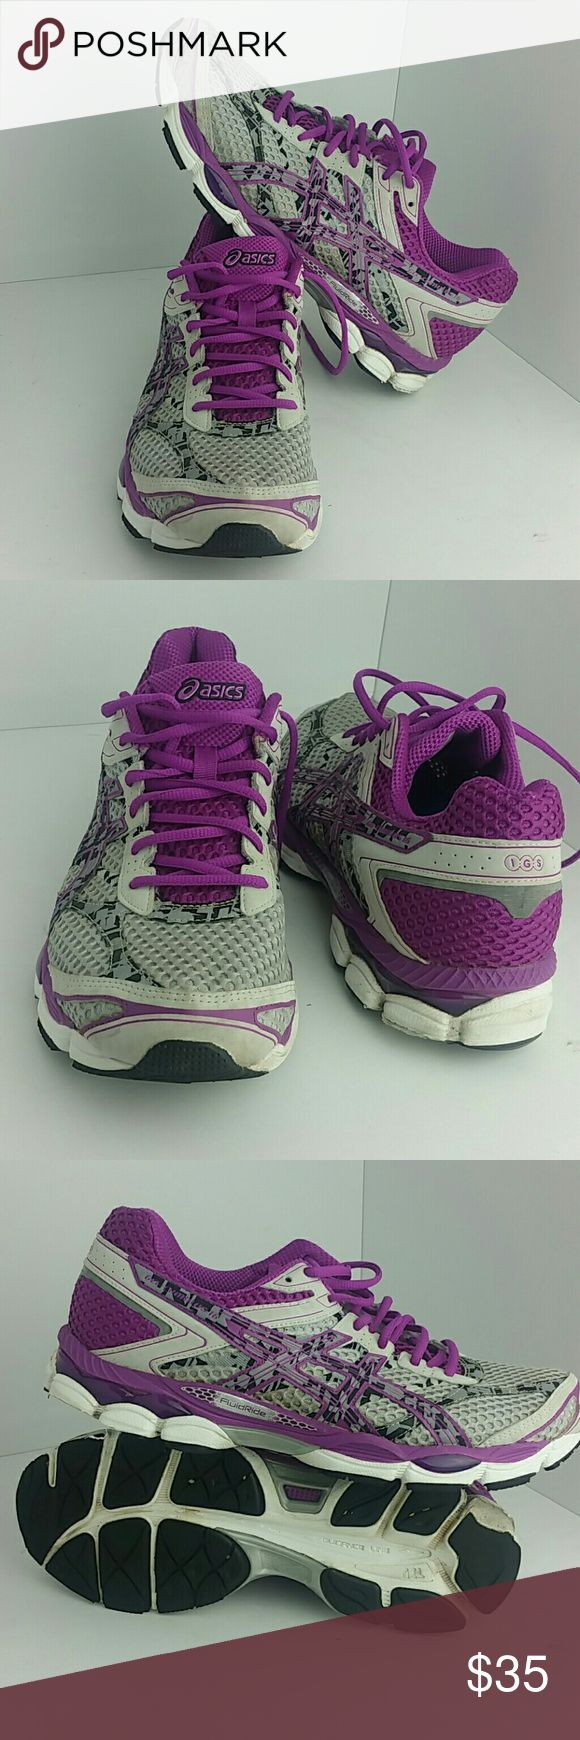 ASICS GEL-CUMULUS 16 WOMEN SHOES IN GOOD CONDITION WITH SCUFFS ON THE SOLE OF BOTH SHOES AS YOU CAN SEE IN THE LAST PICTURE   SKE # KM4 asics Shoes Athletic Shoes